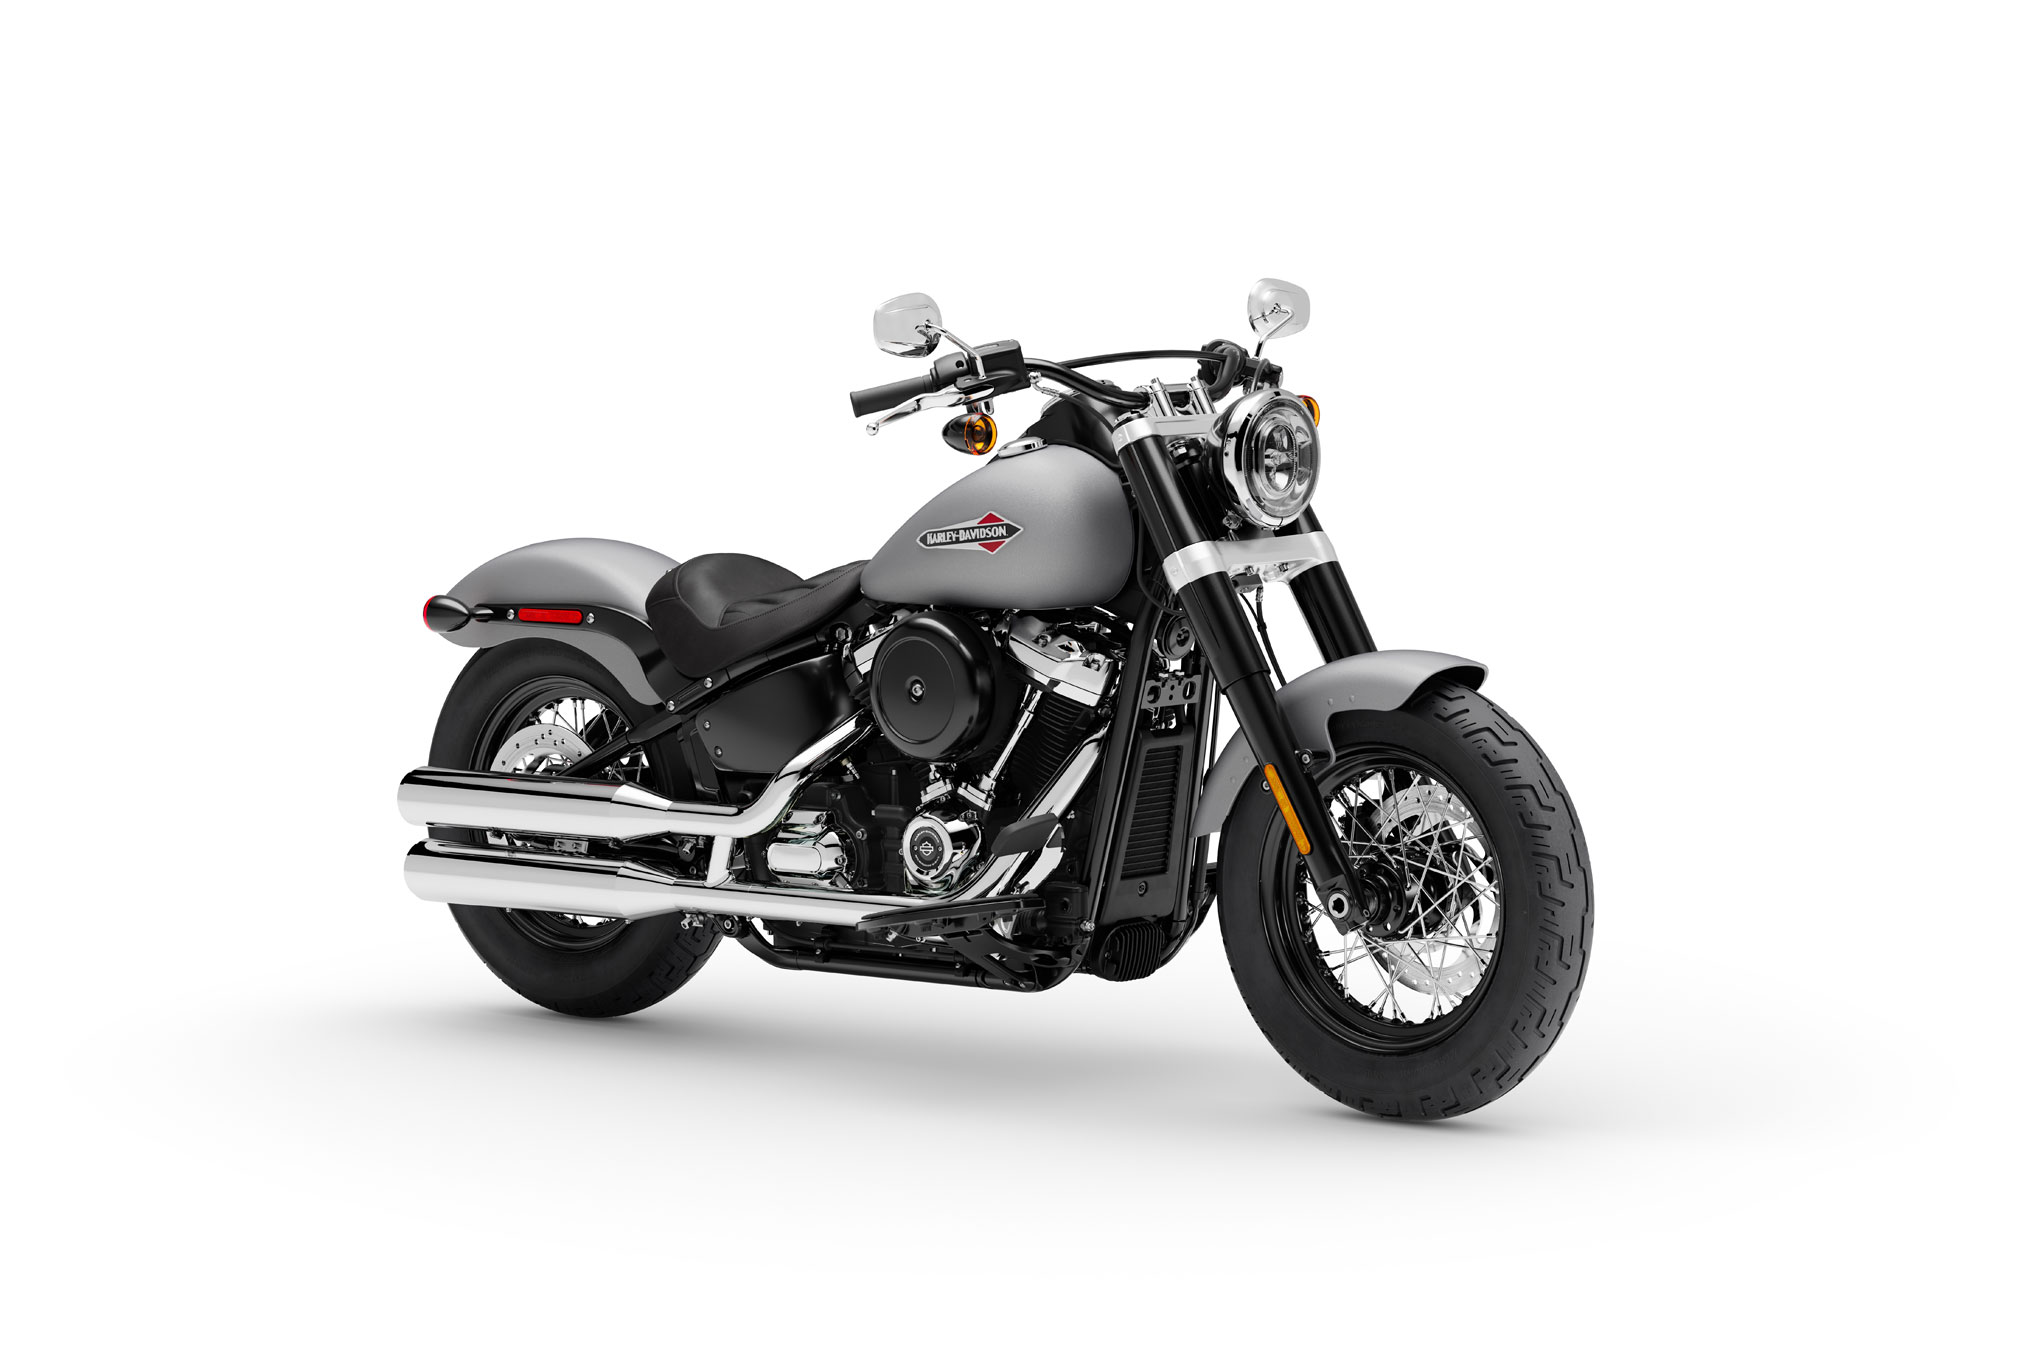 2020 Harley-Davidson Softail Slim Guide • Total Motorcycle